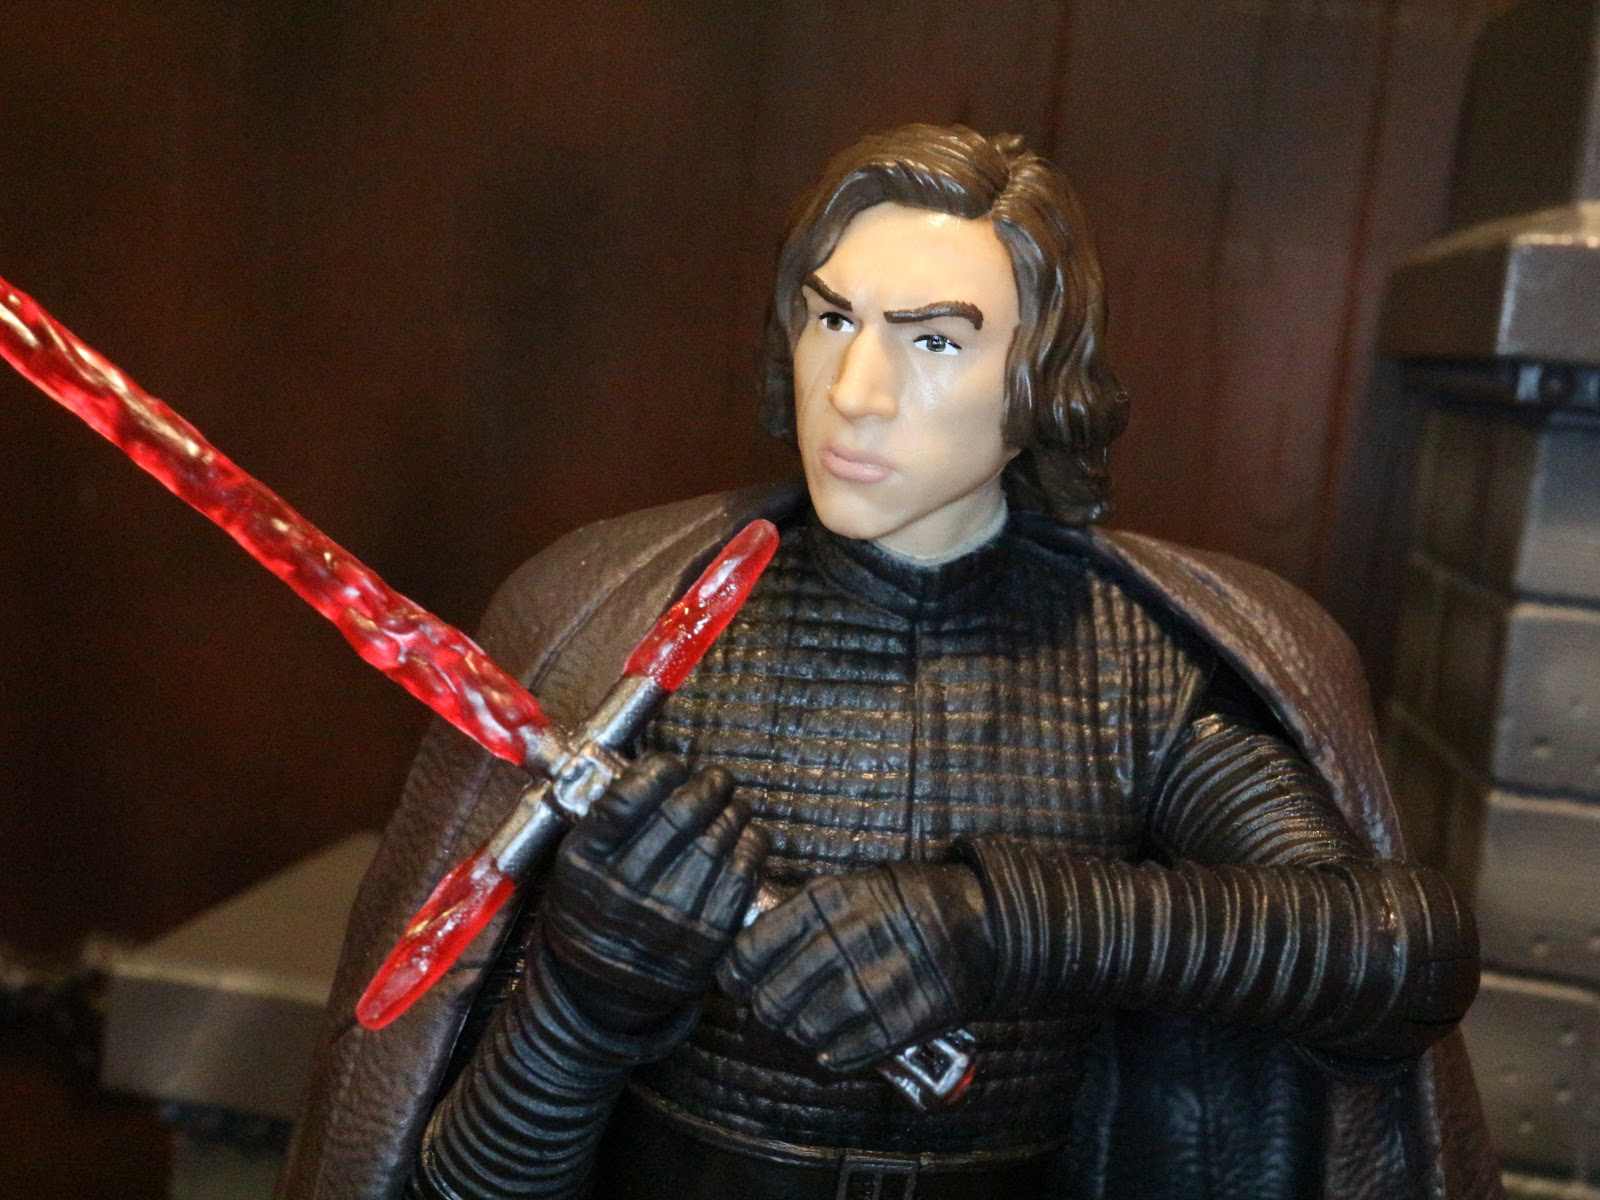 action figure barbecue road to the last jedi kylo ren from star